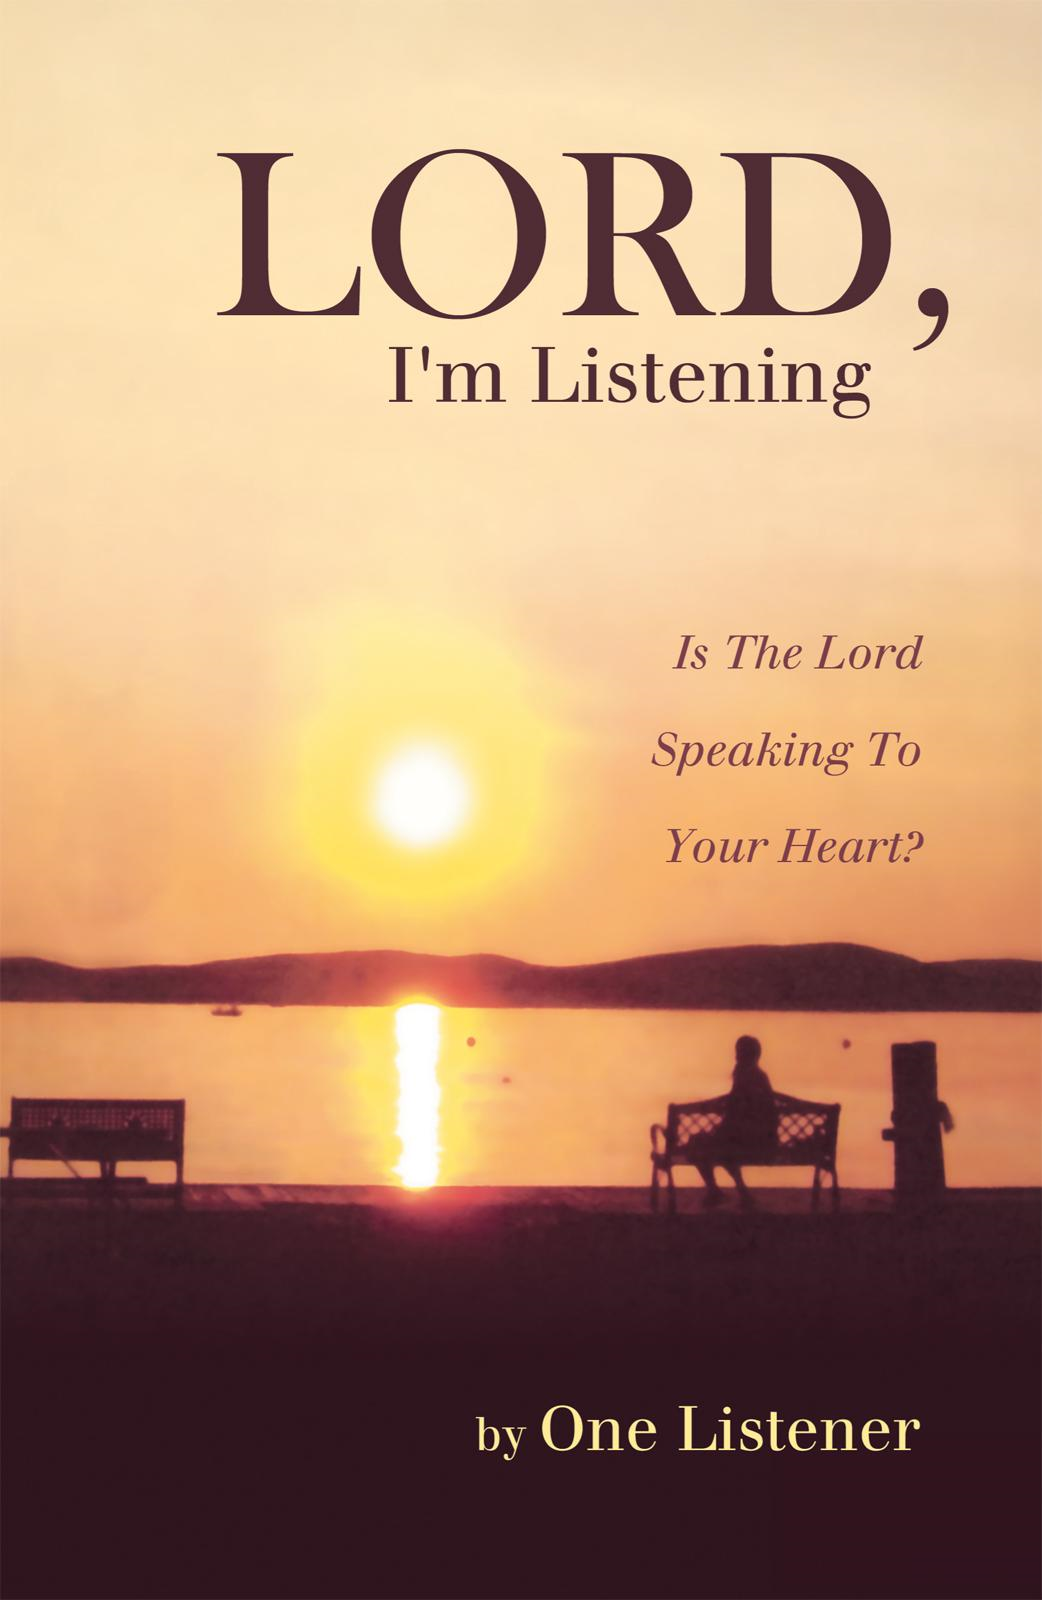 Lord, I'm Listening By: One Listener